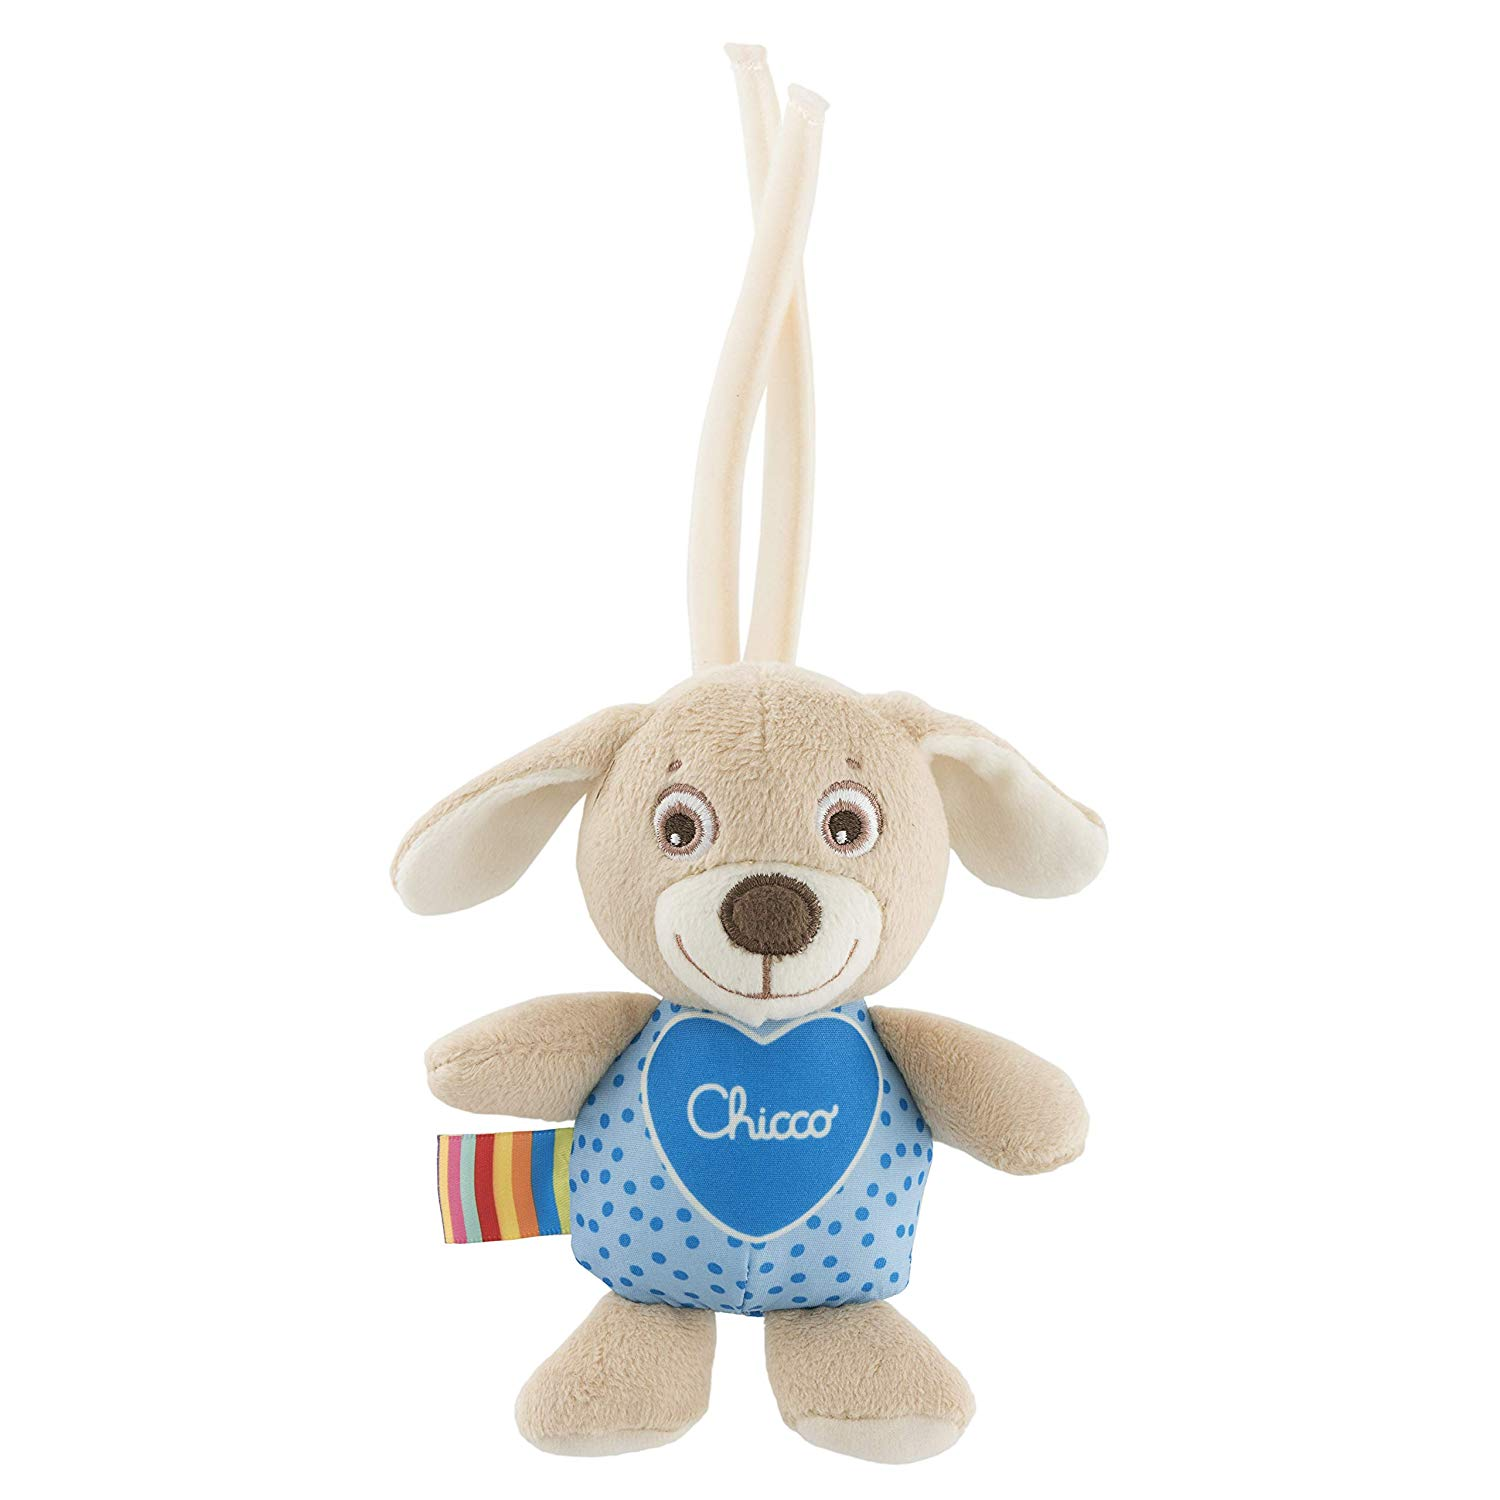 Chicco 00009719000000 Musical Chime Jack